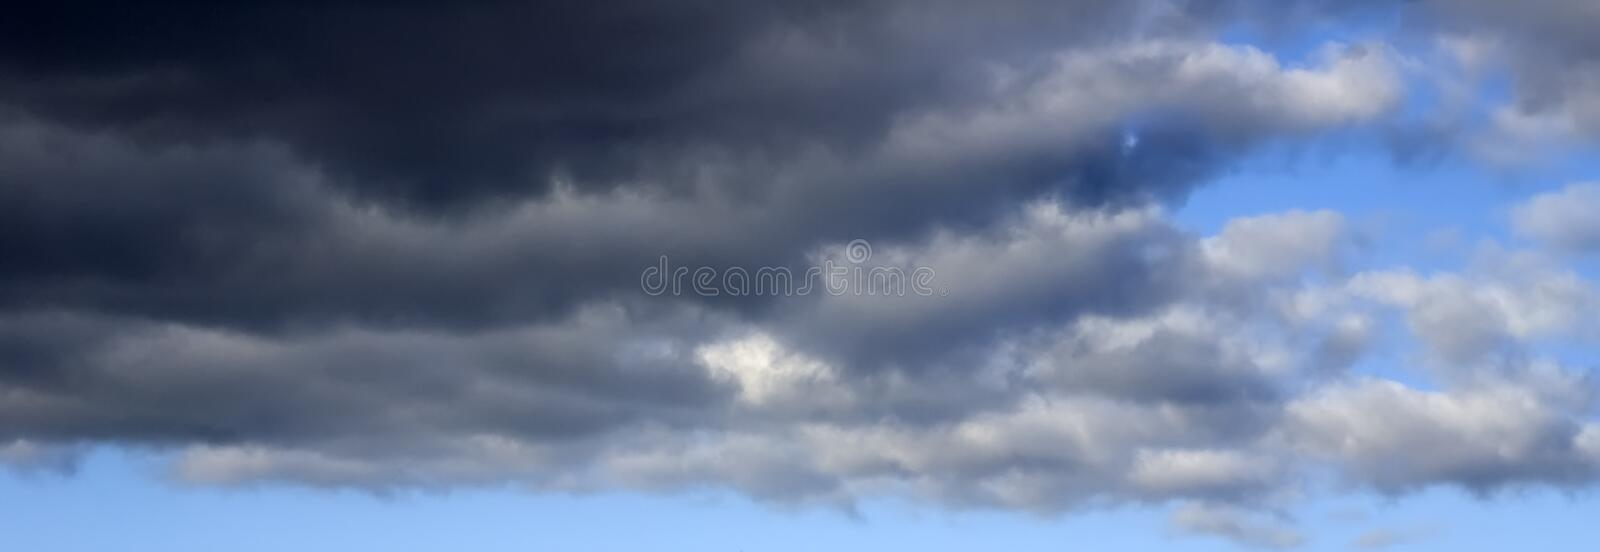 Background sky in the evening. Dramatic alarming colors before sunset with black and grey clouds on blue sky royalty free stock image